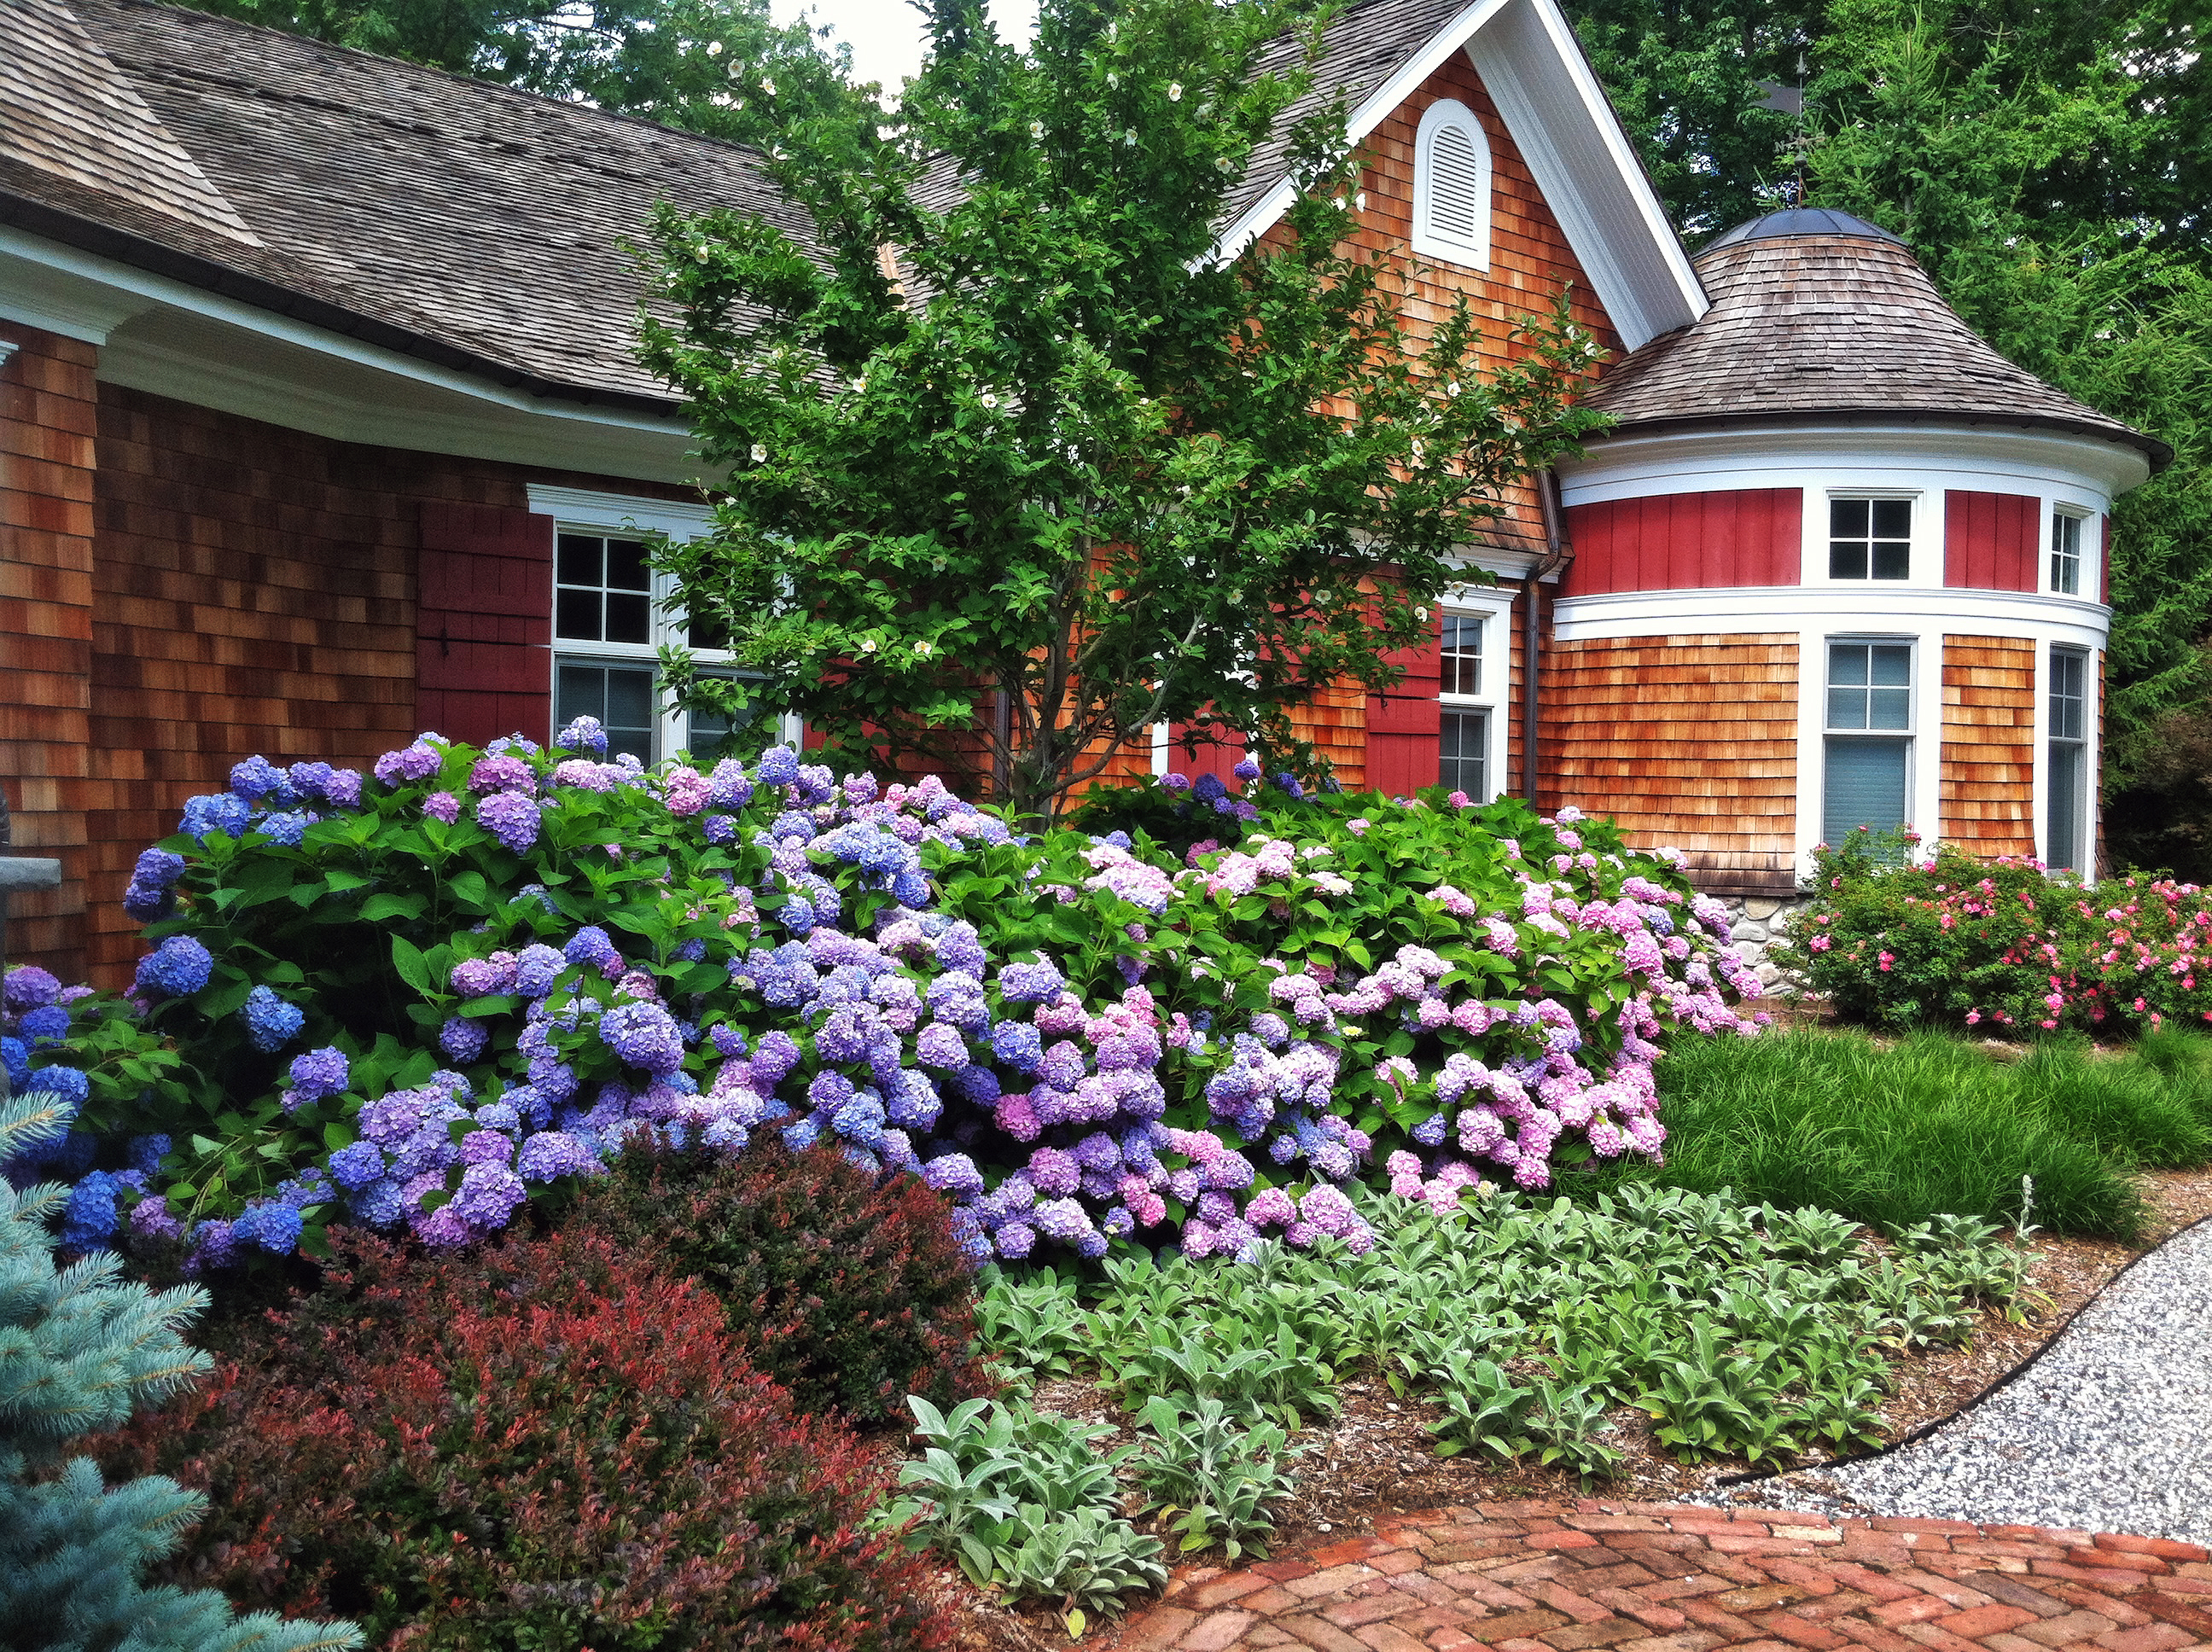 Beautifully landscaped Hydrangea Garden in front of a cedar style victorian house.